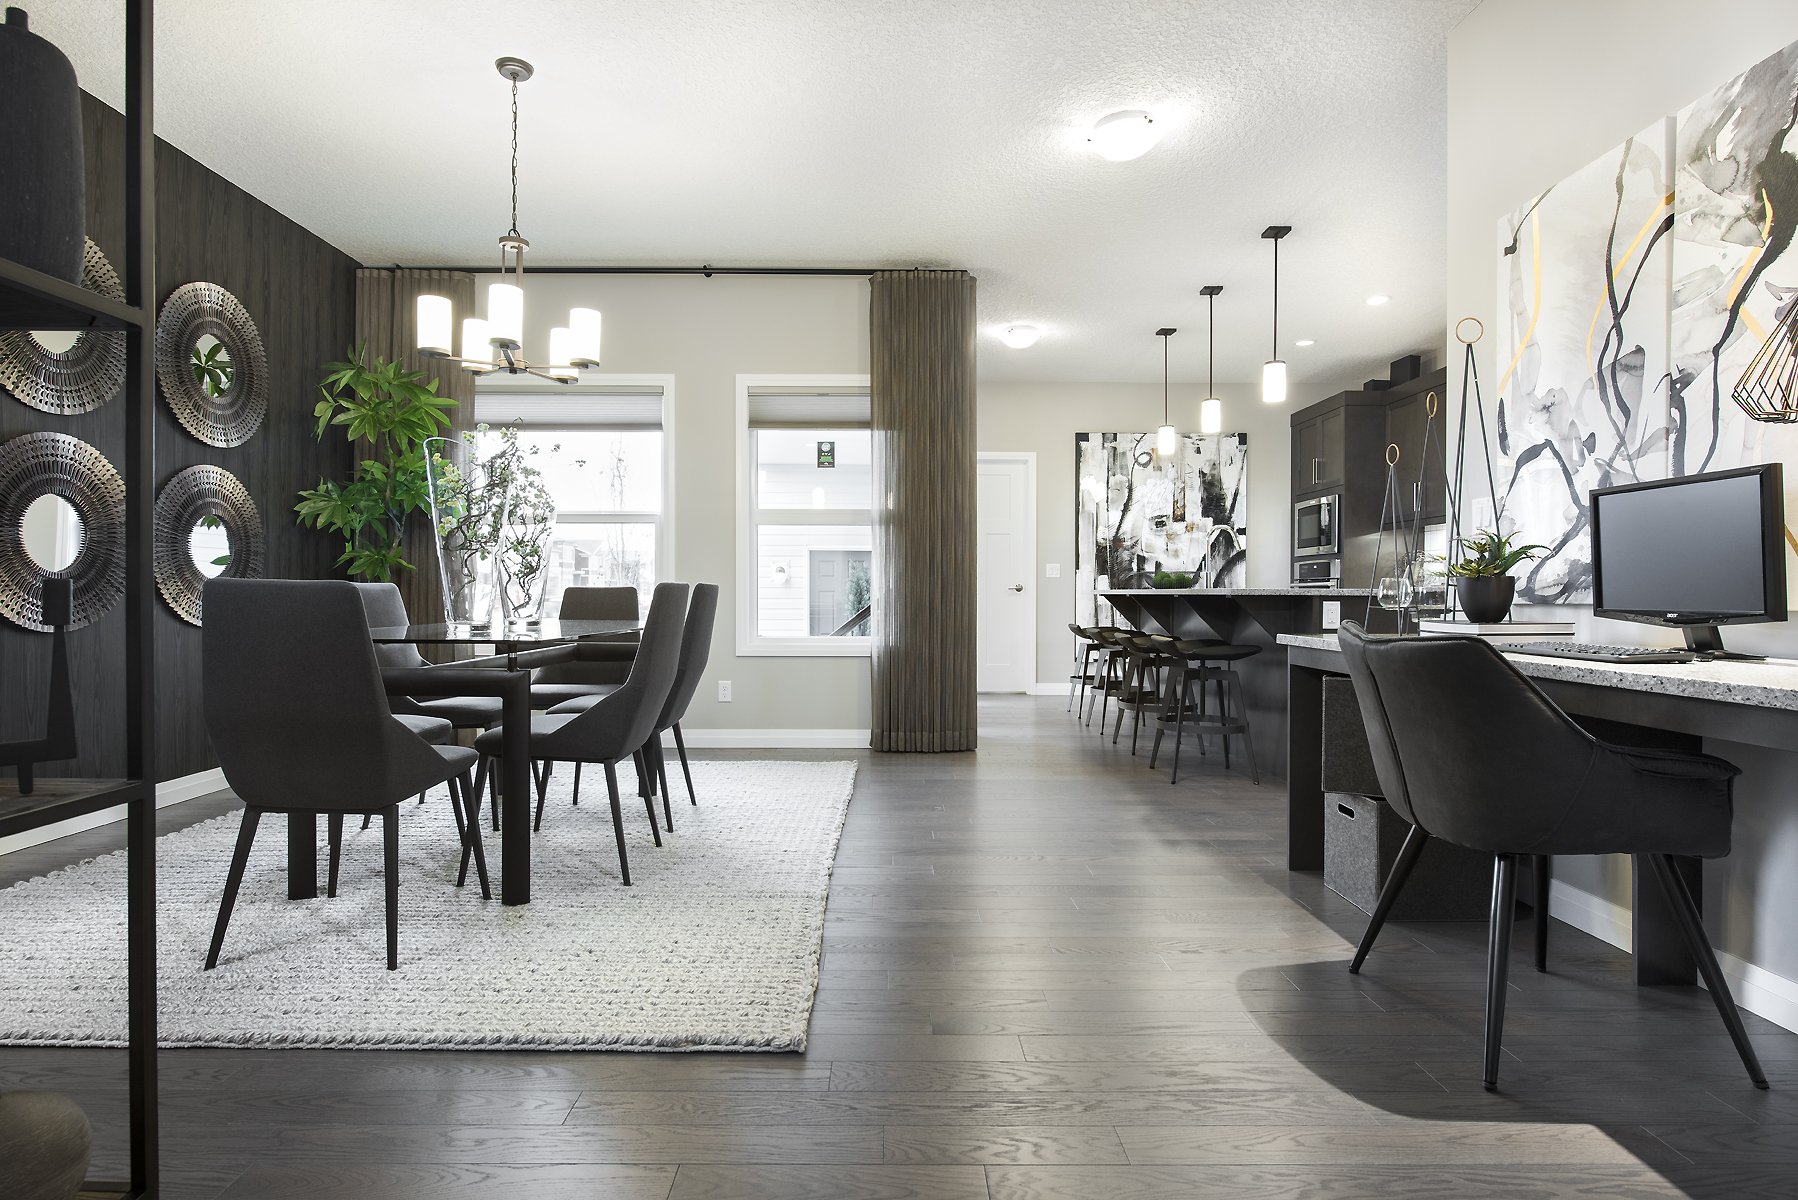 the combination dining room and kitchen in the carrara model courtyard home by jayman built.